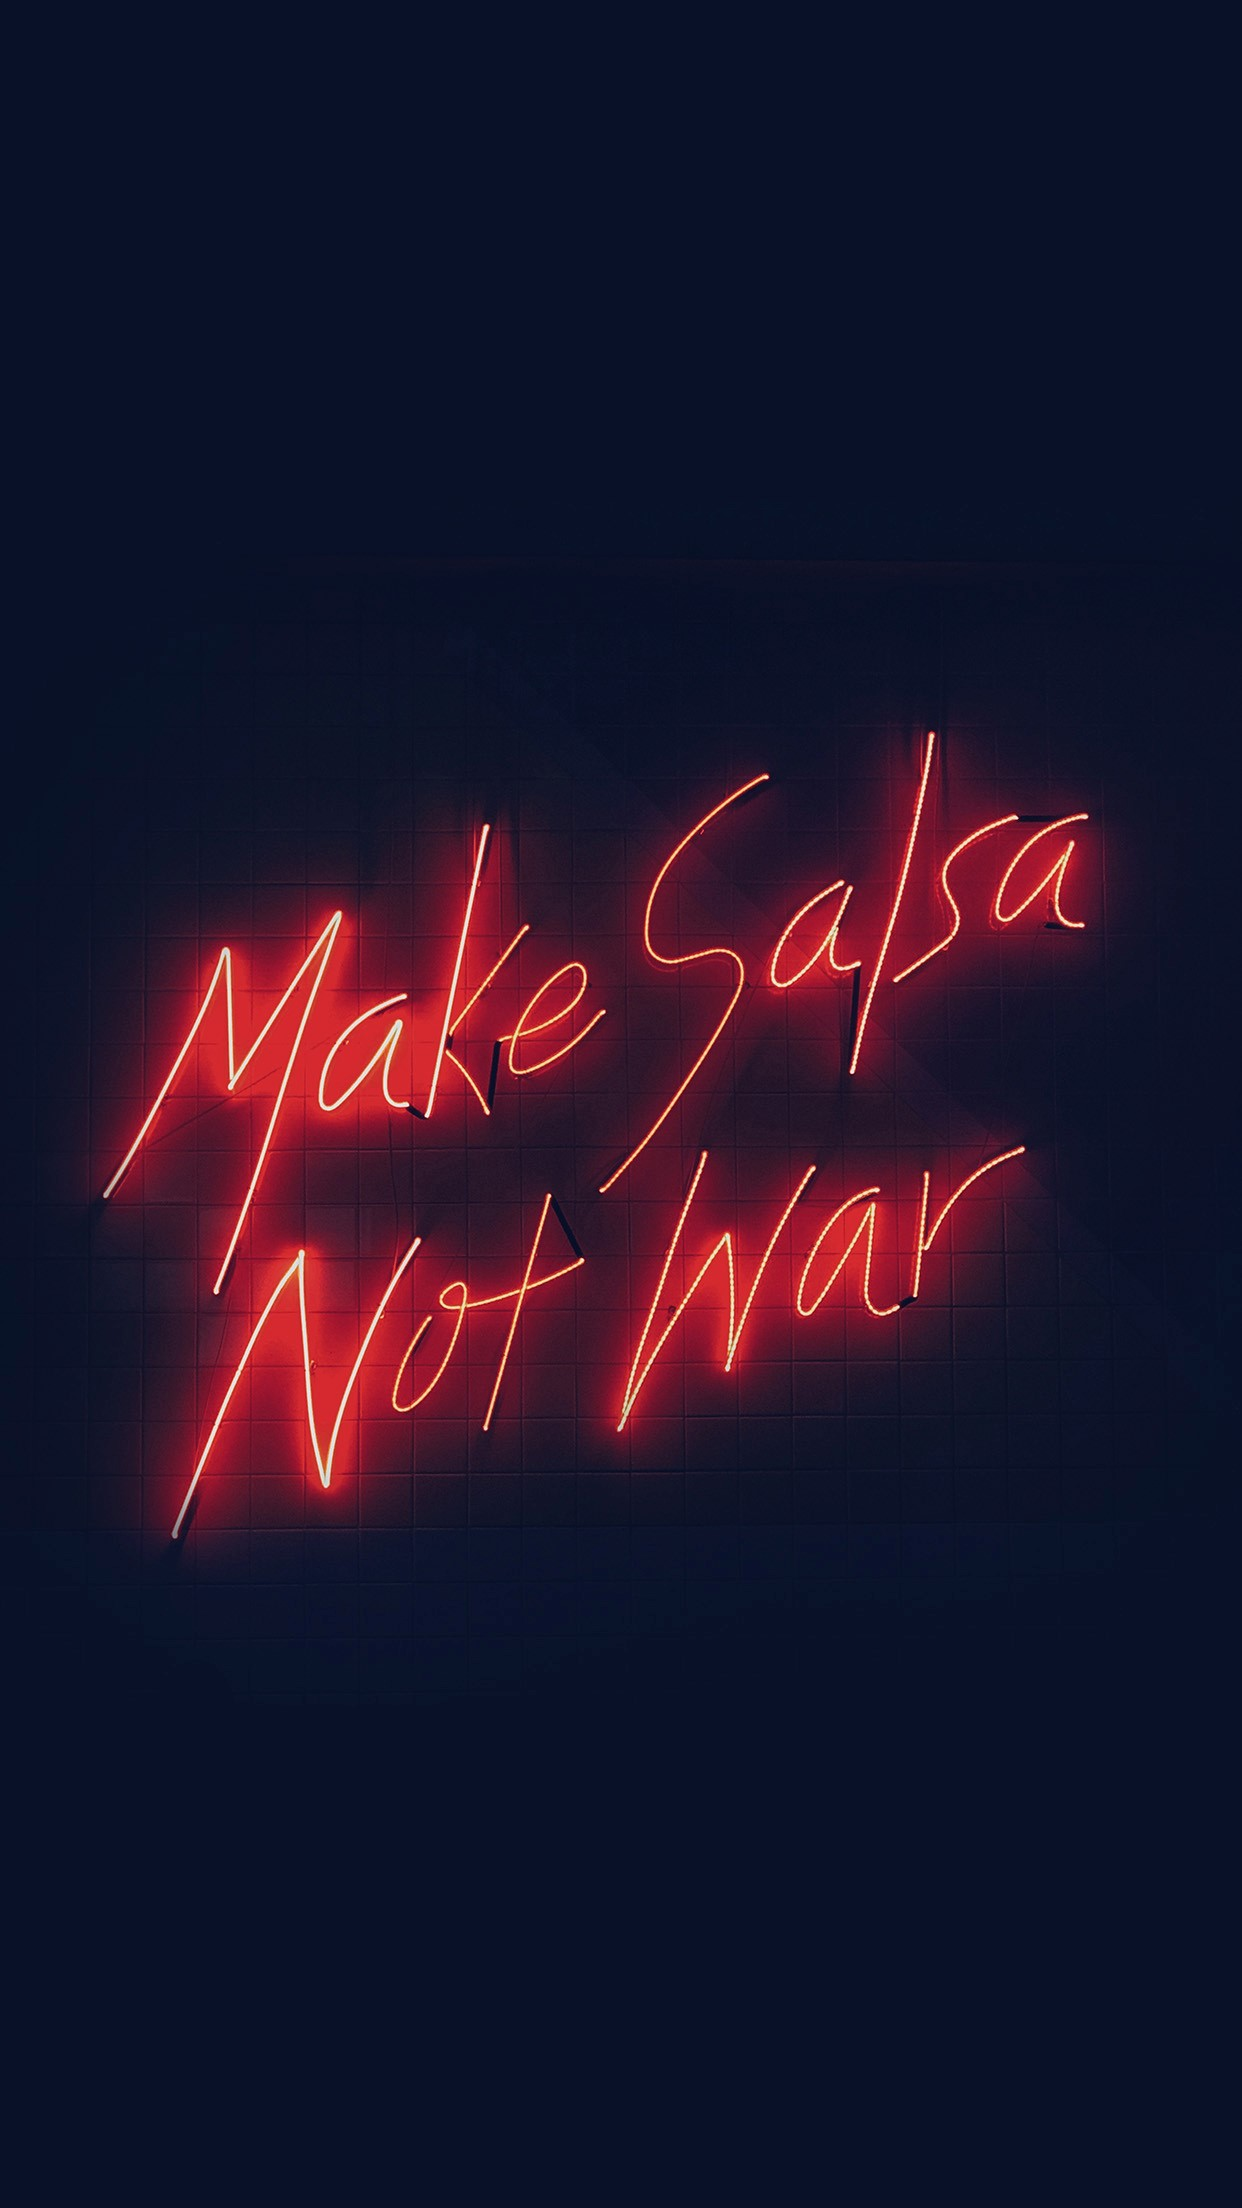 Make Salsa Not War iPhone 6 HD Wallpaper HD   Download 1242x2208